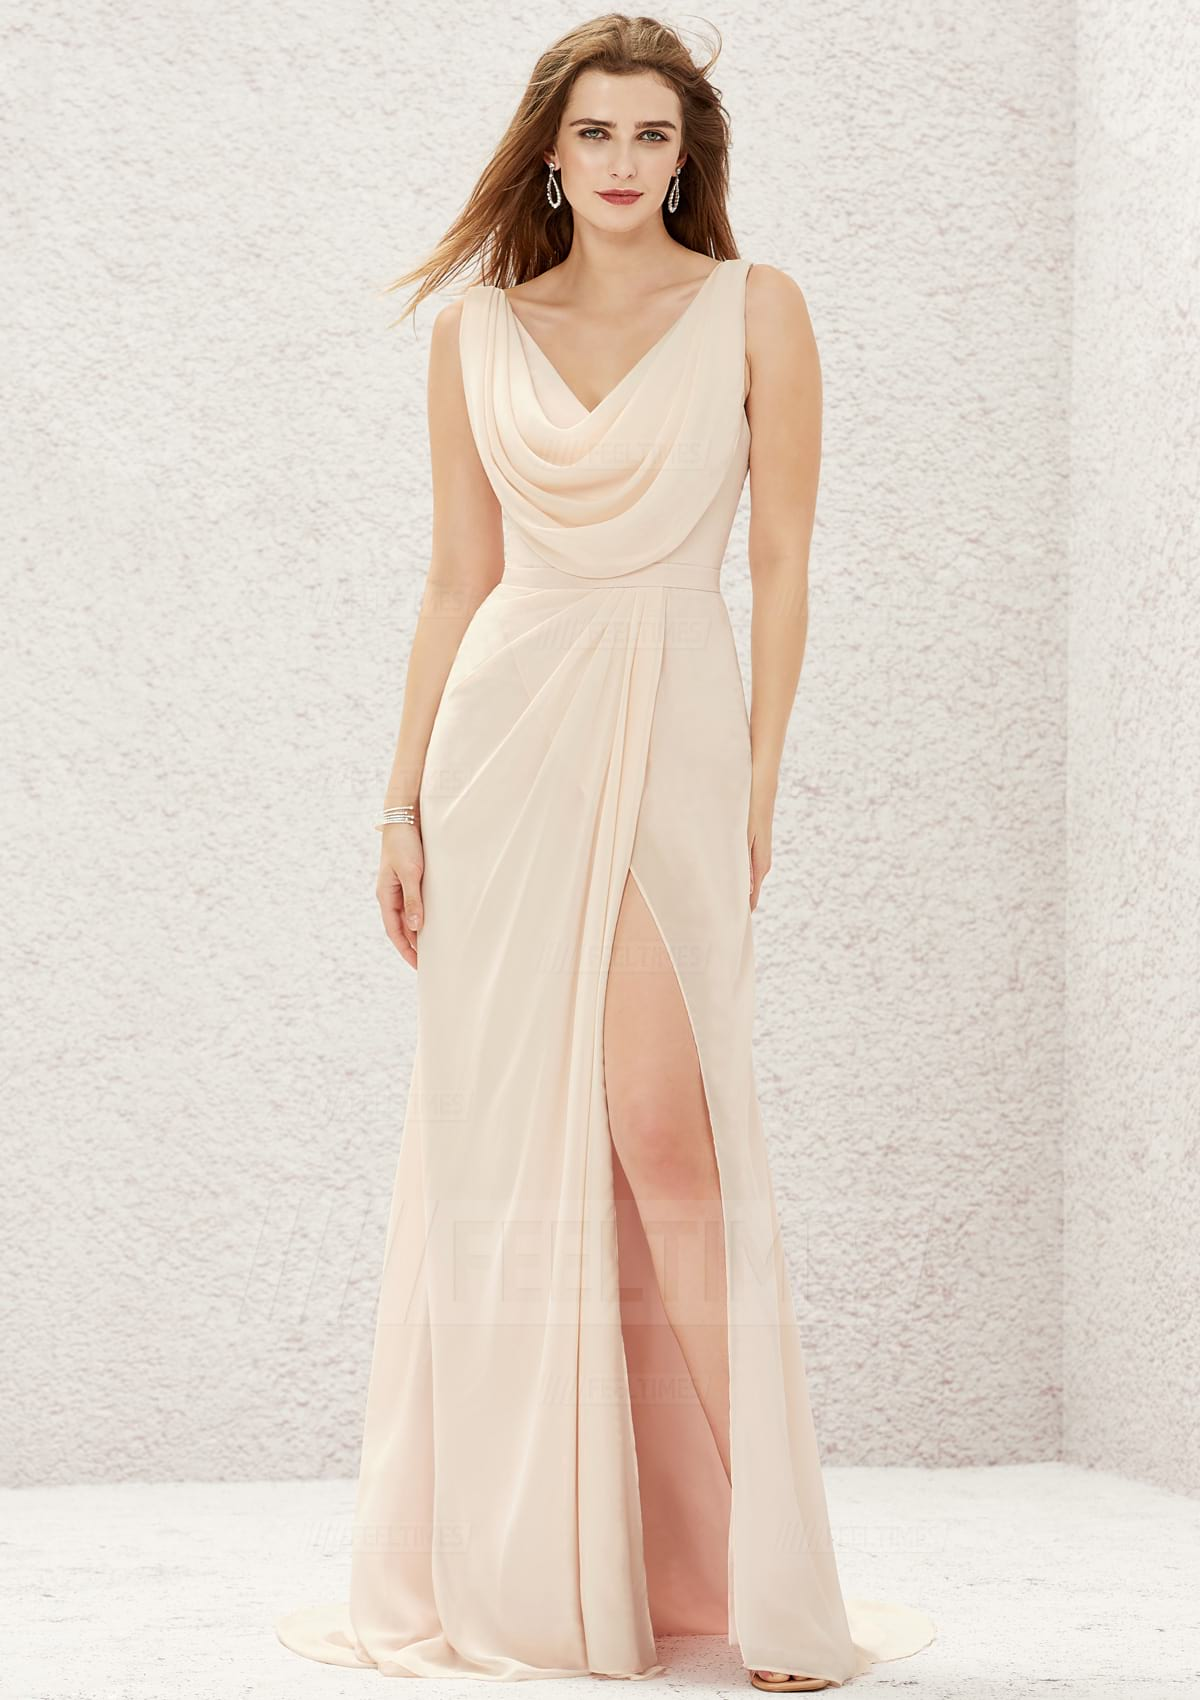 A-line/Princess Sleeveless Sweep Train Chiffon Satin Bridesmaid Dress With Split/Pleated